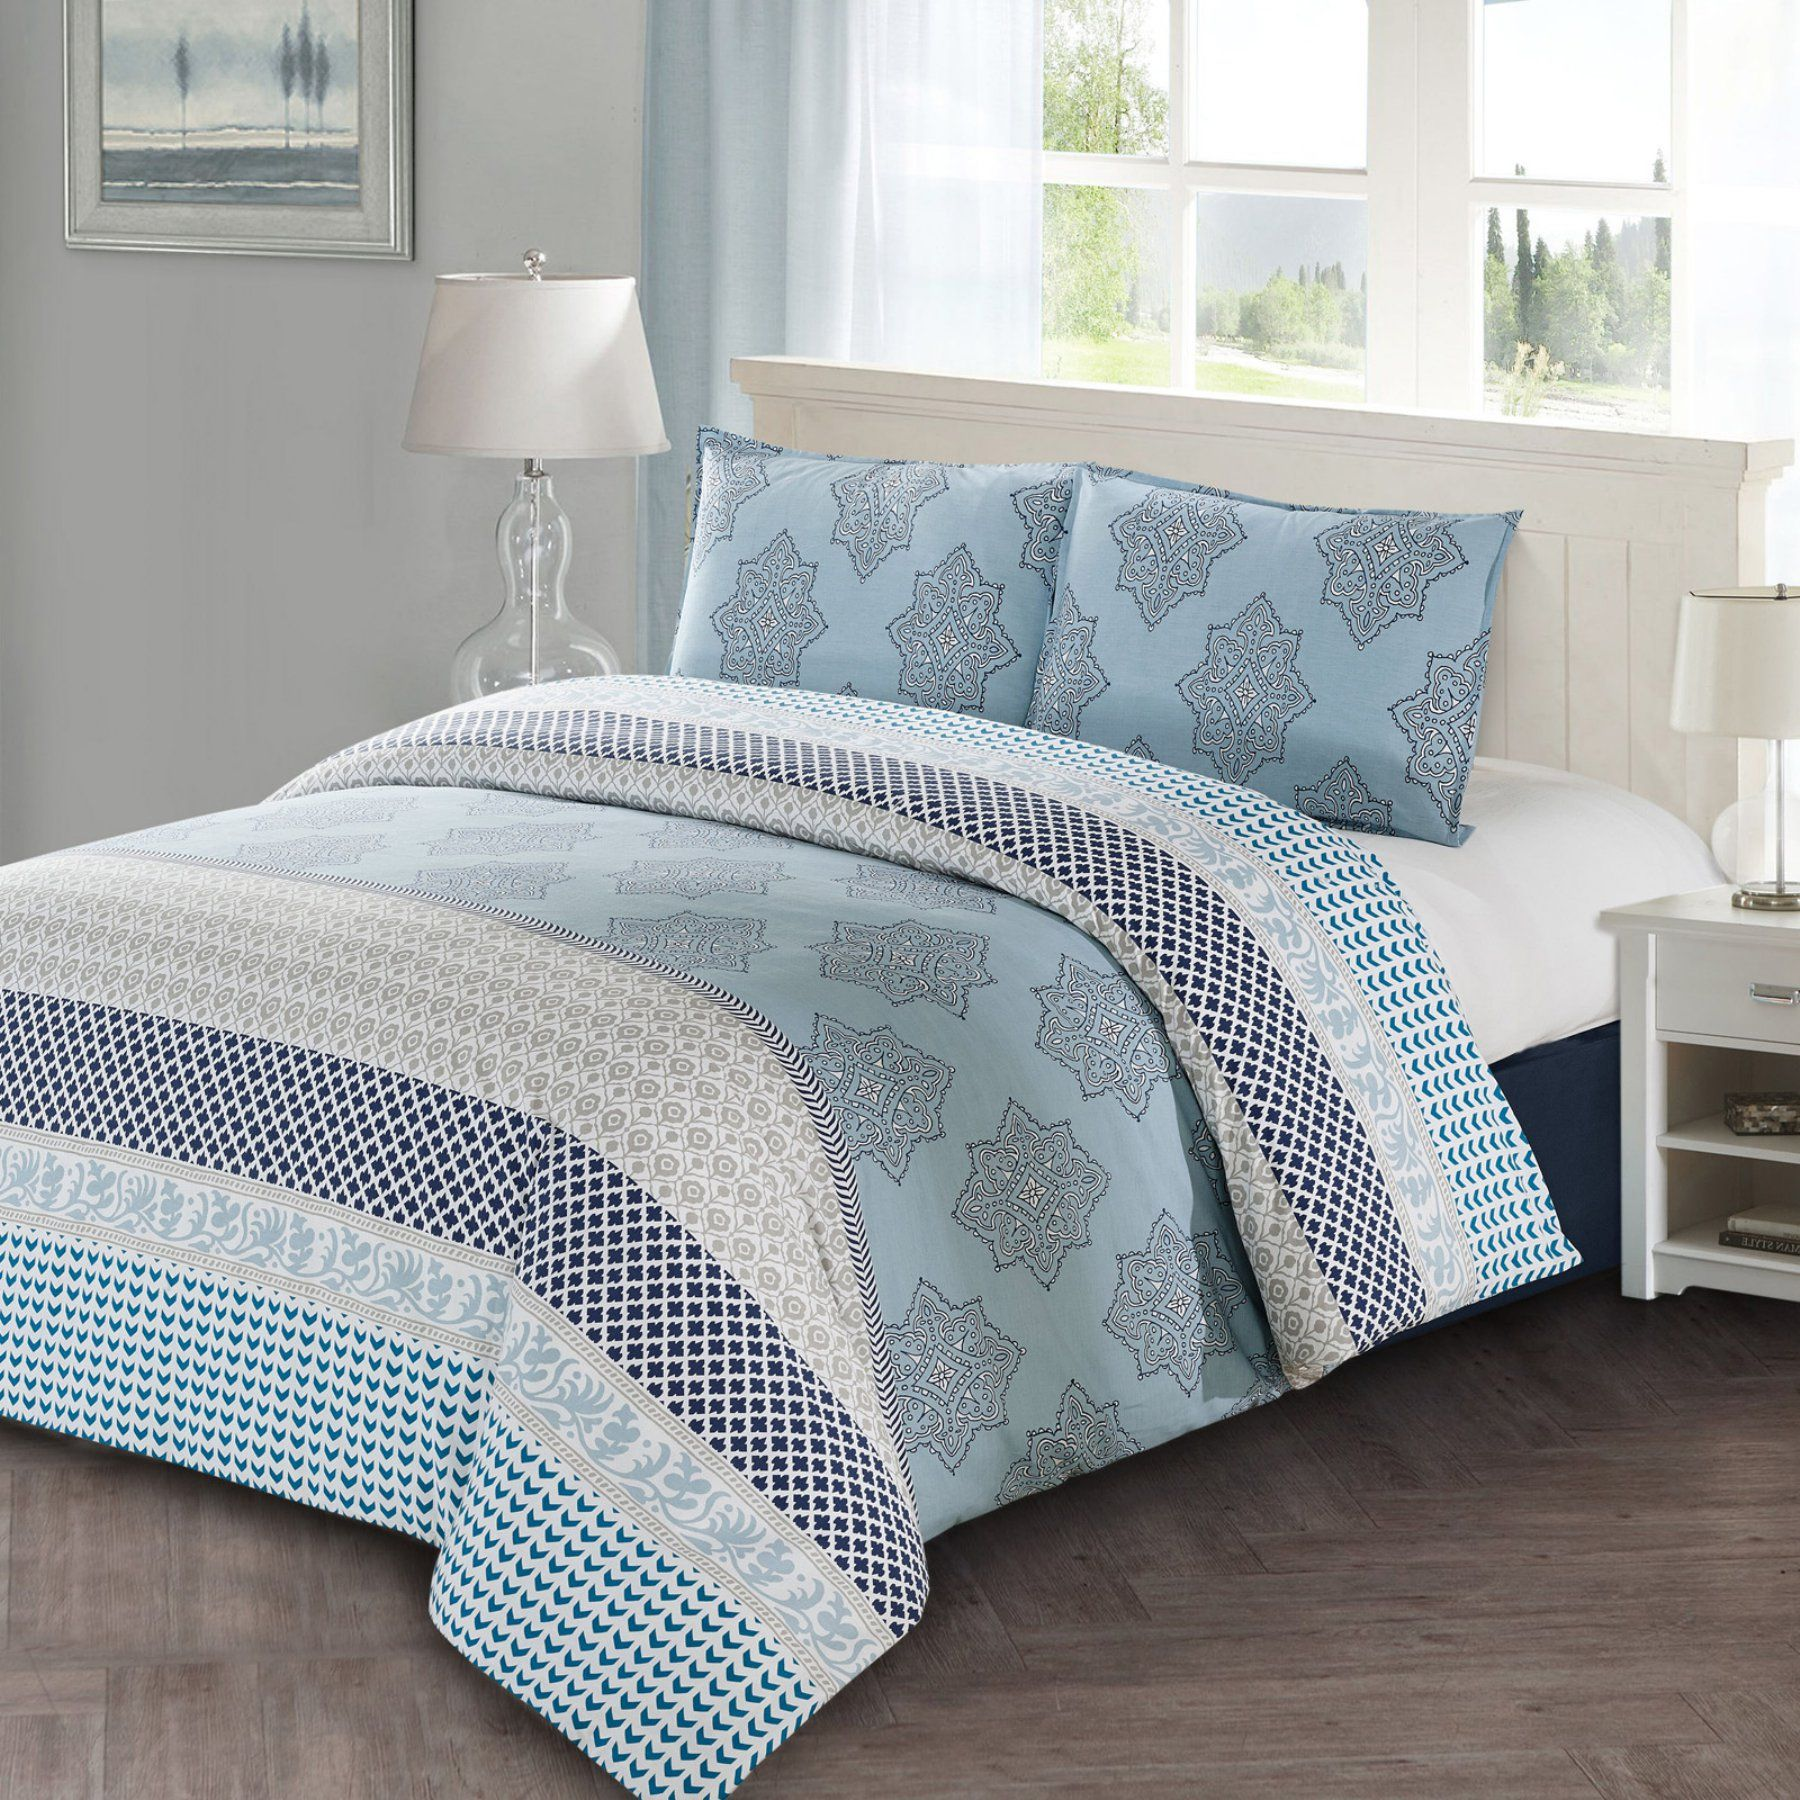 Lilou 3 Piece Duvet Cover Set By Style Quarters